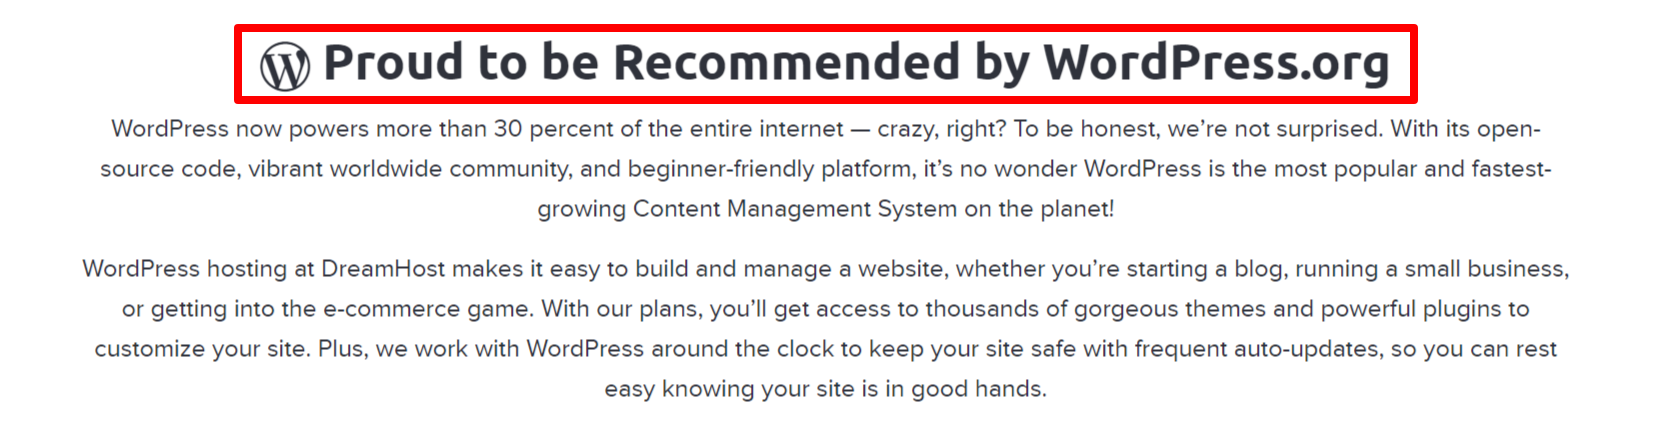 Recommended by WordPress.org